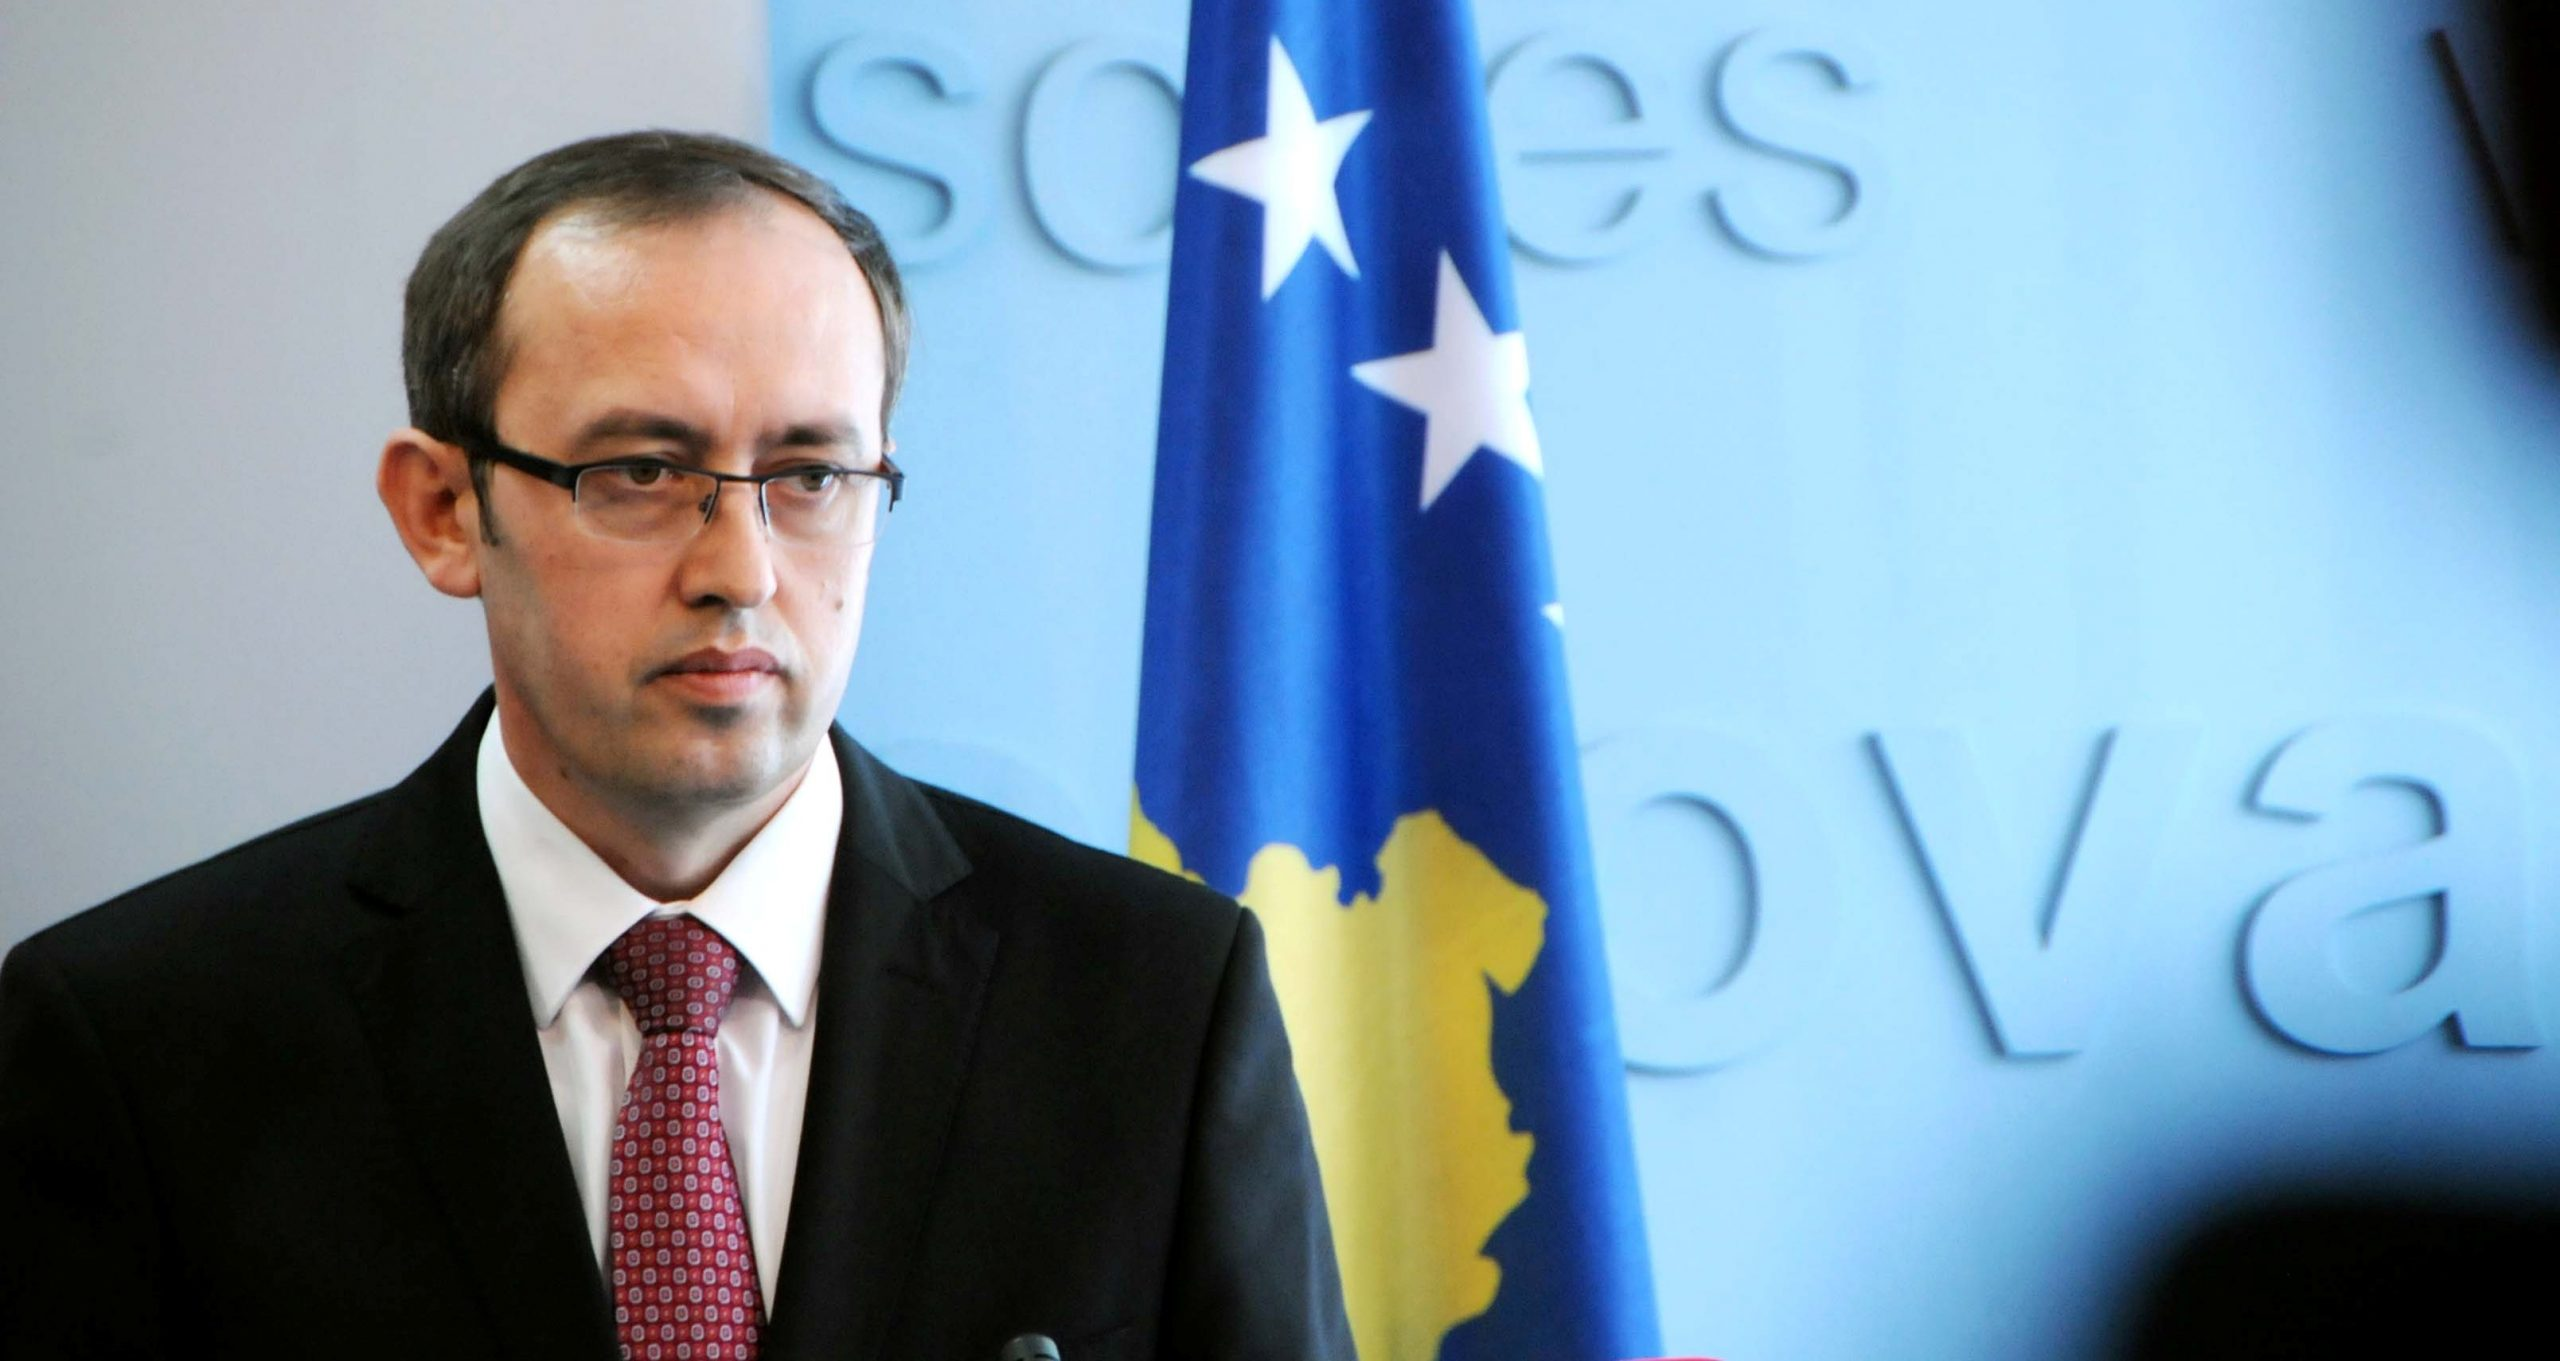 Kosovo Suspends Road Construction after Serbia's Complaint